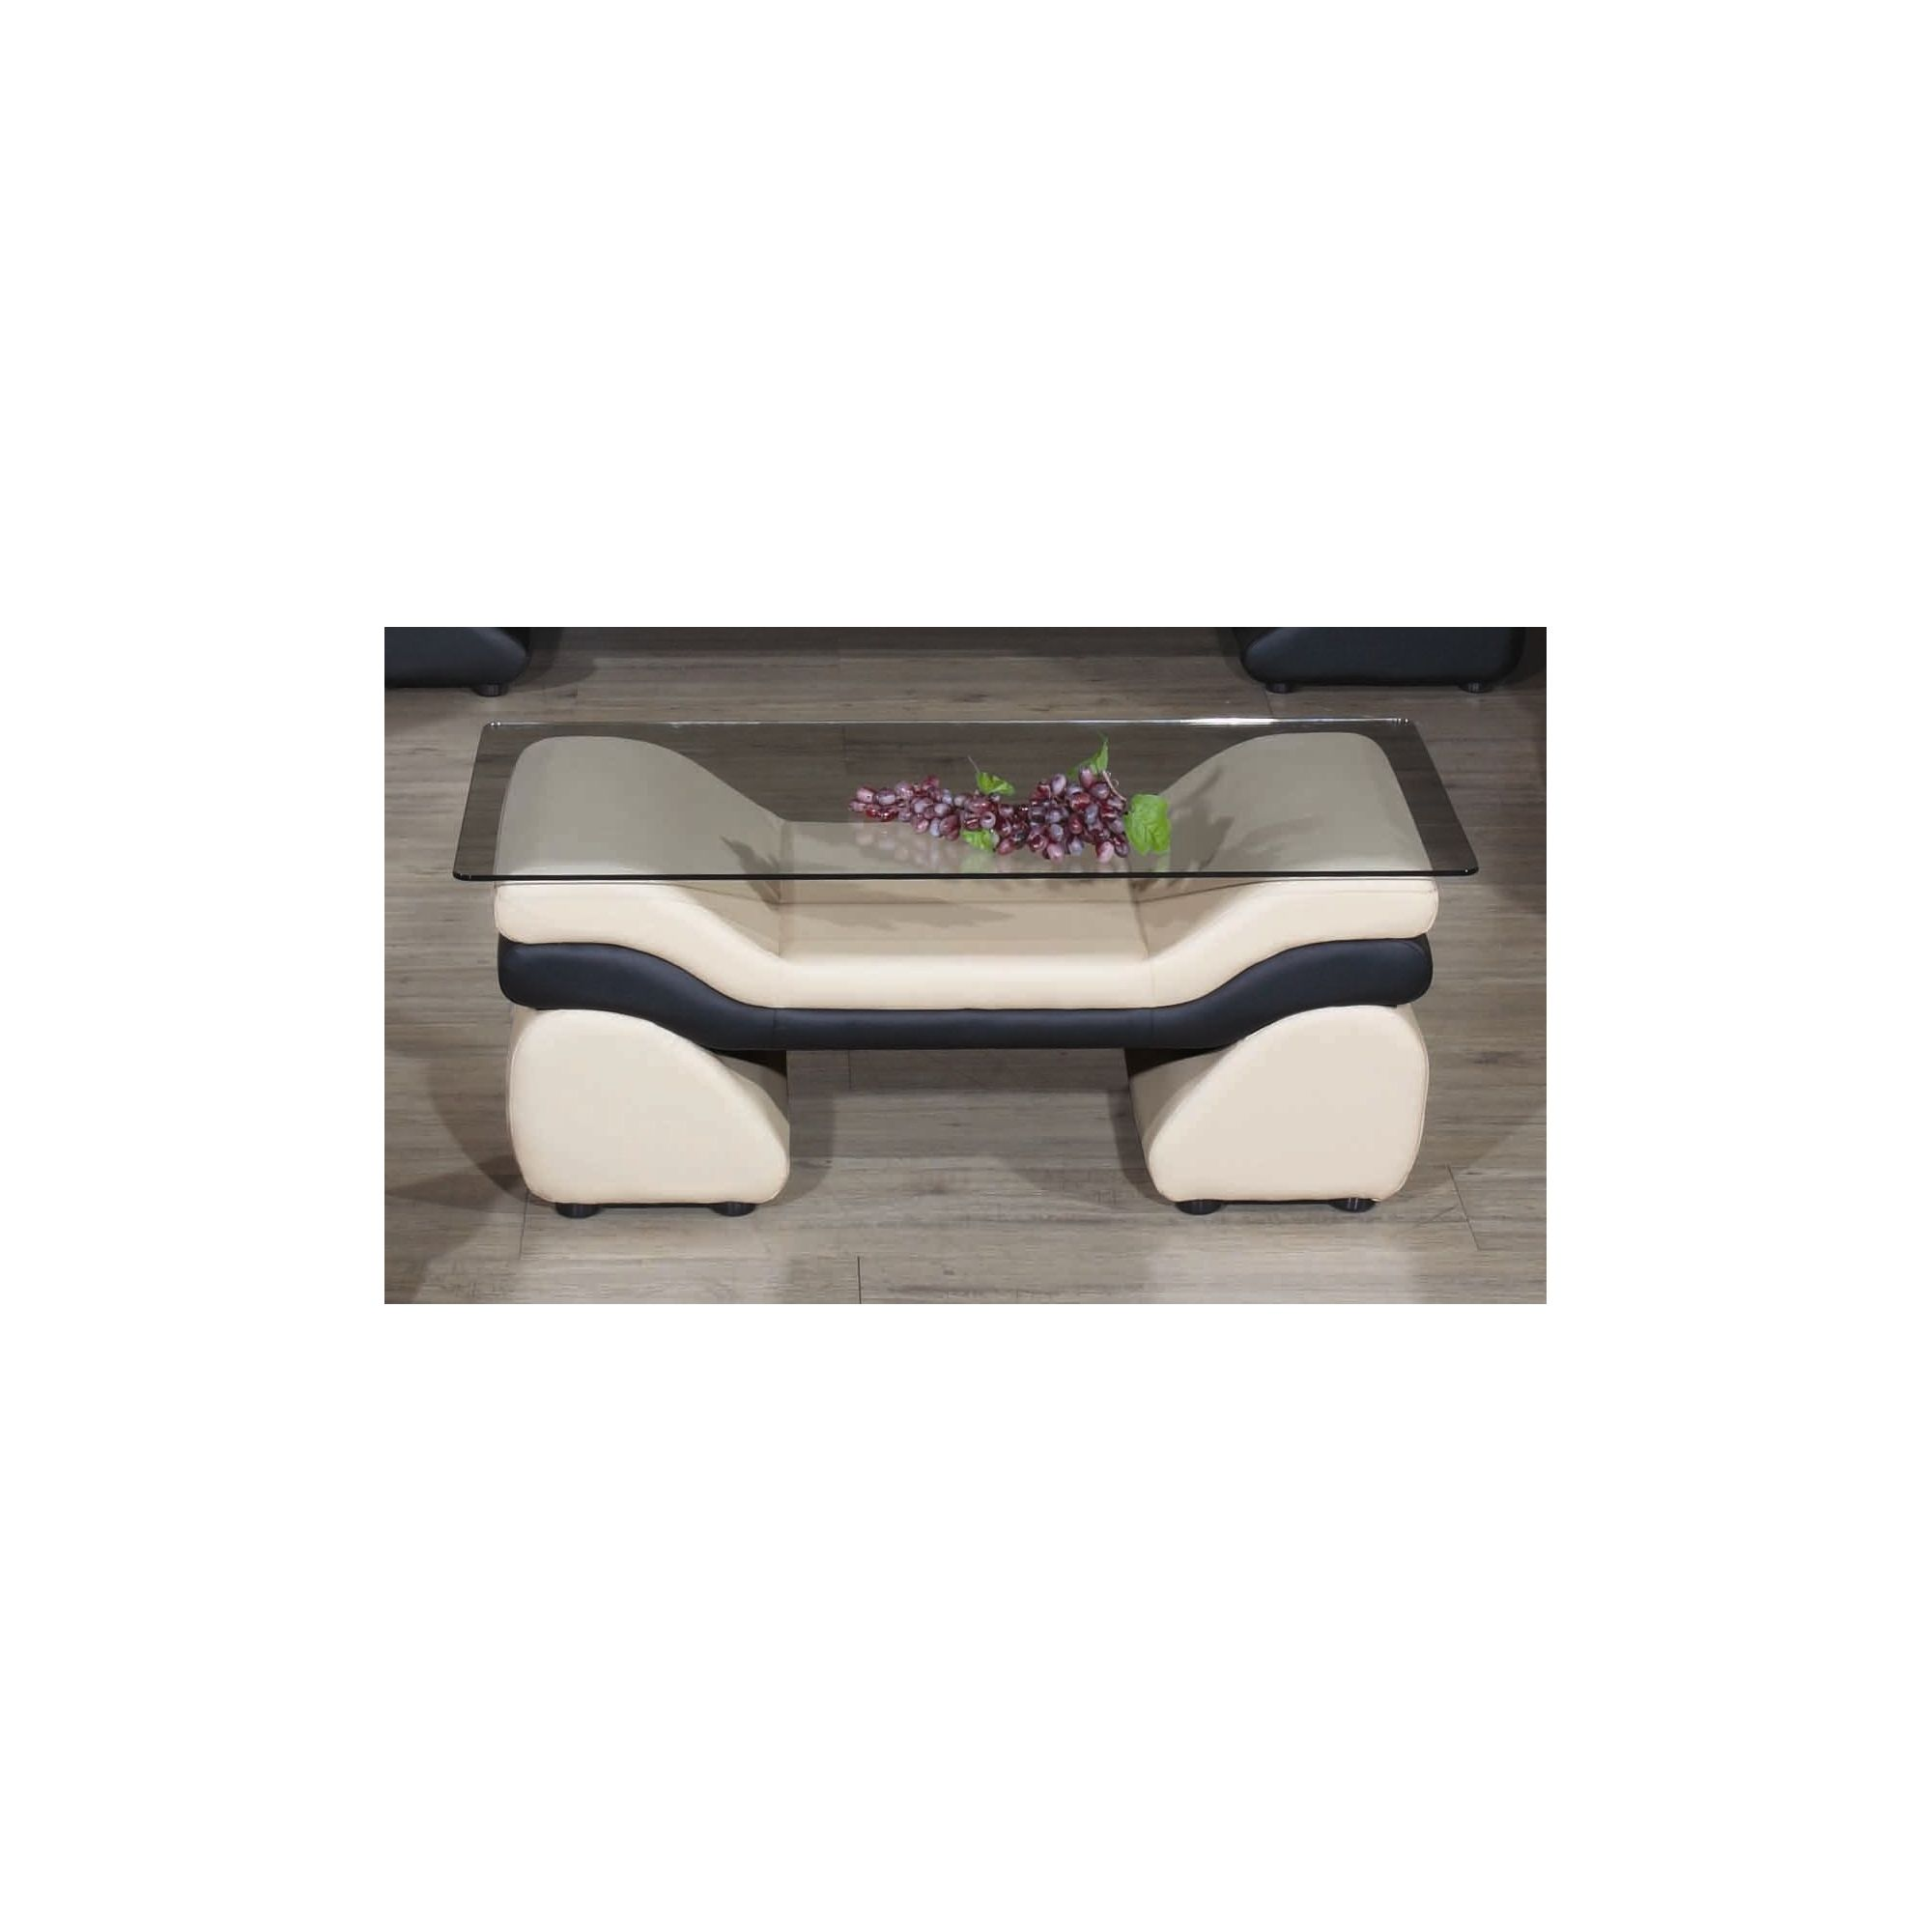 JPL Furniture Miami Coffee Table - Rose White / Black at Tesco Direct